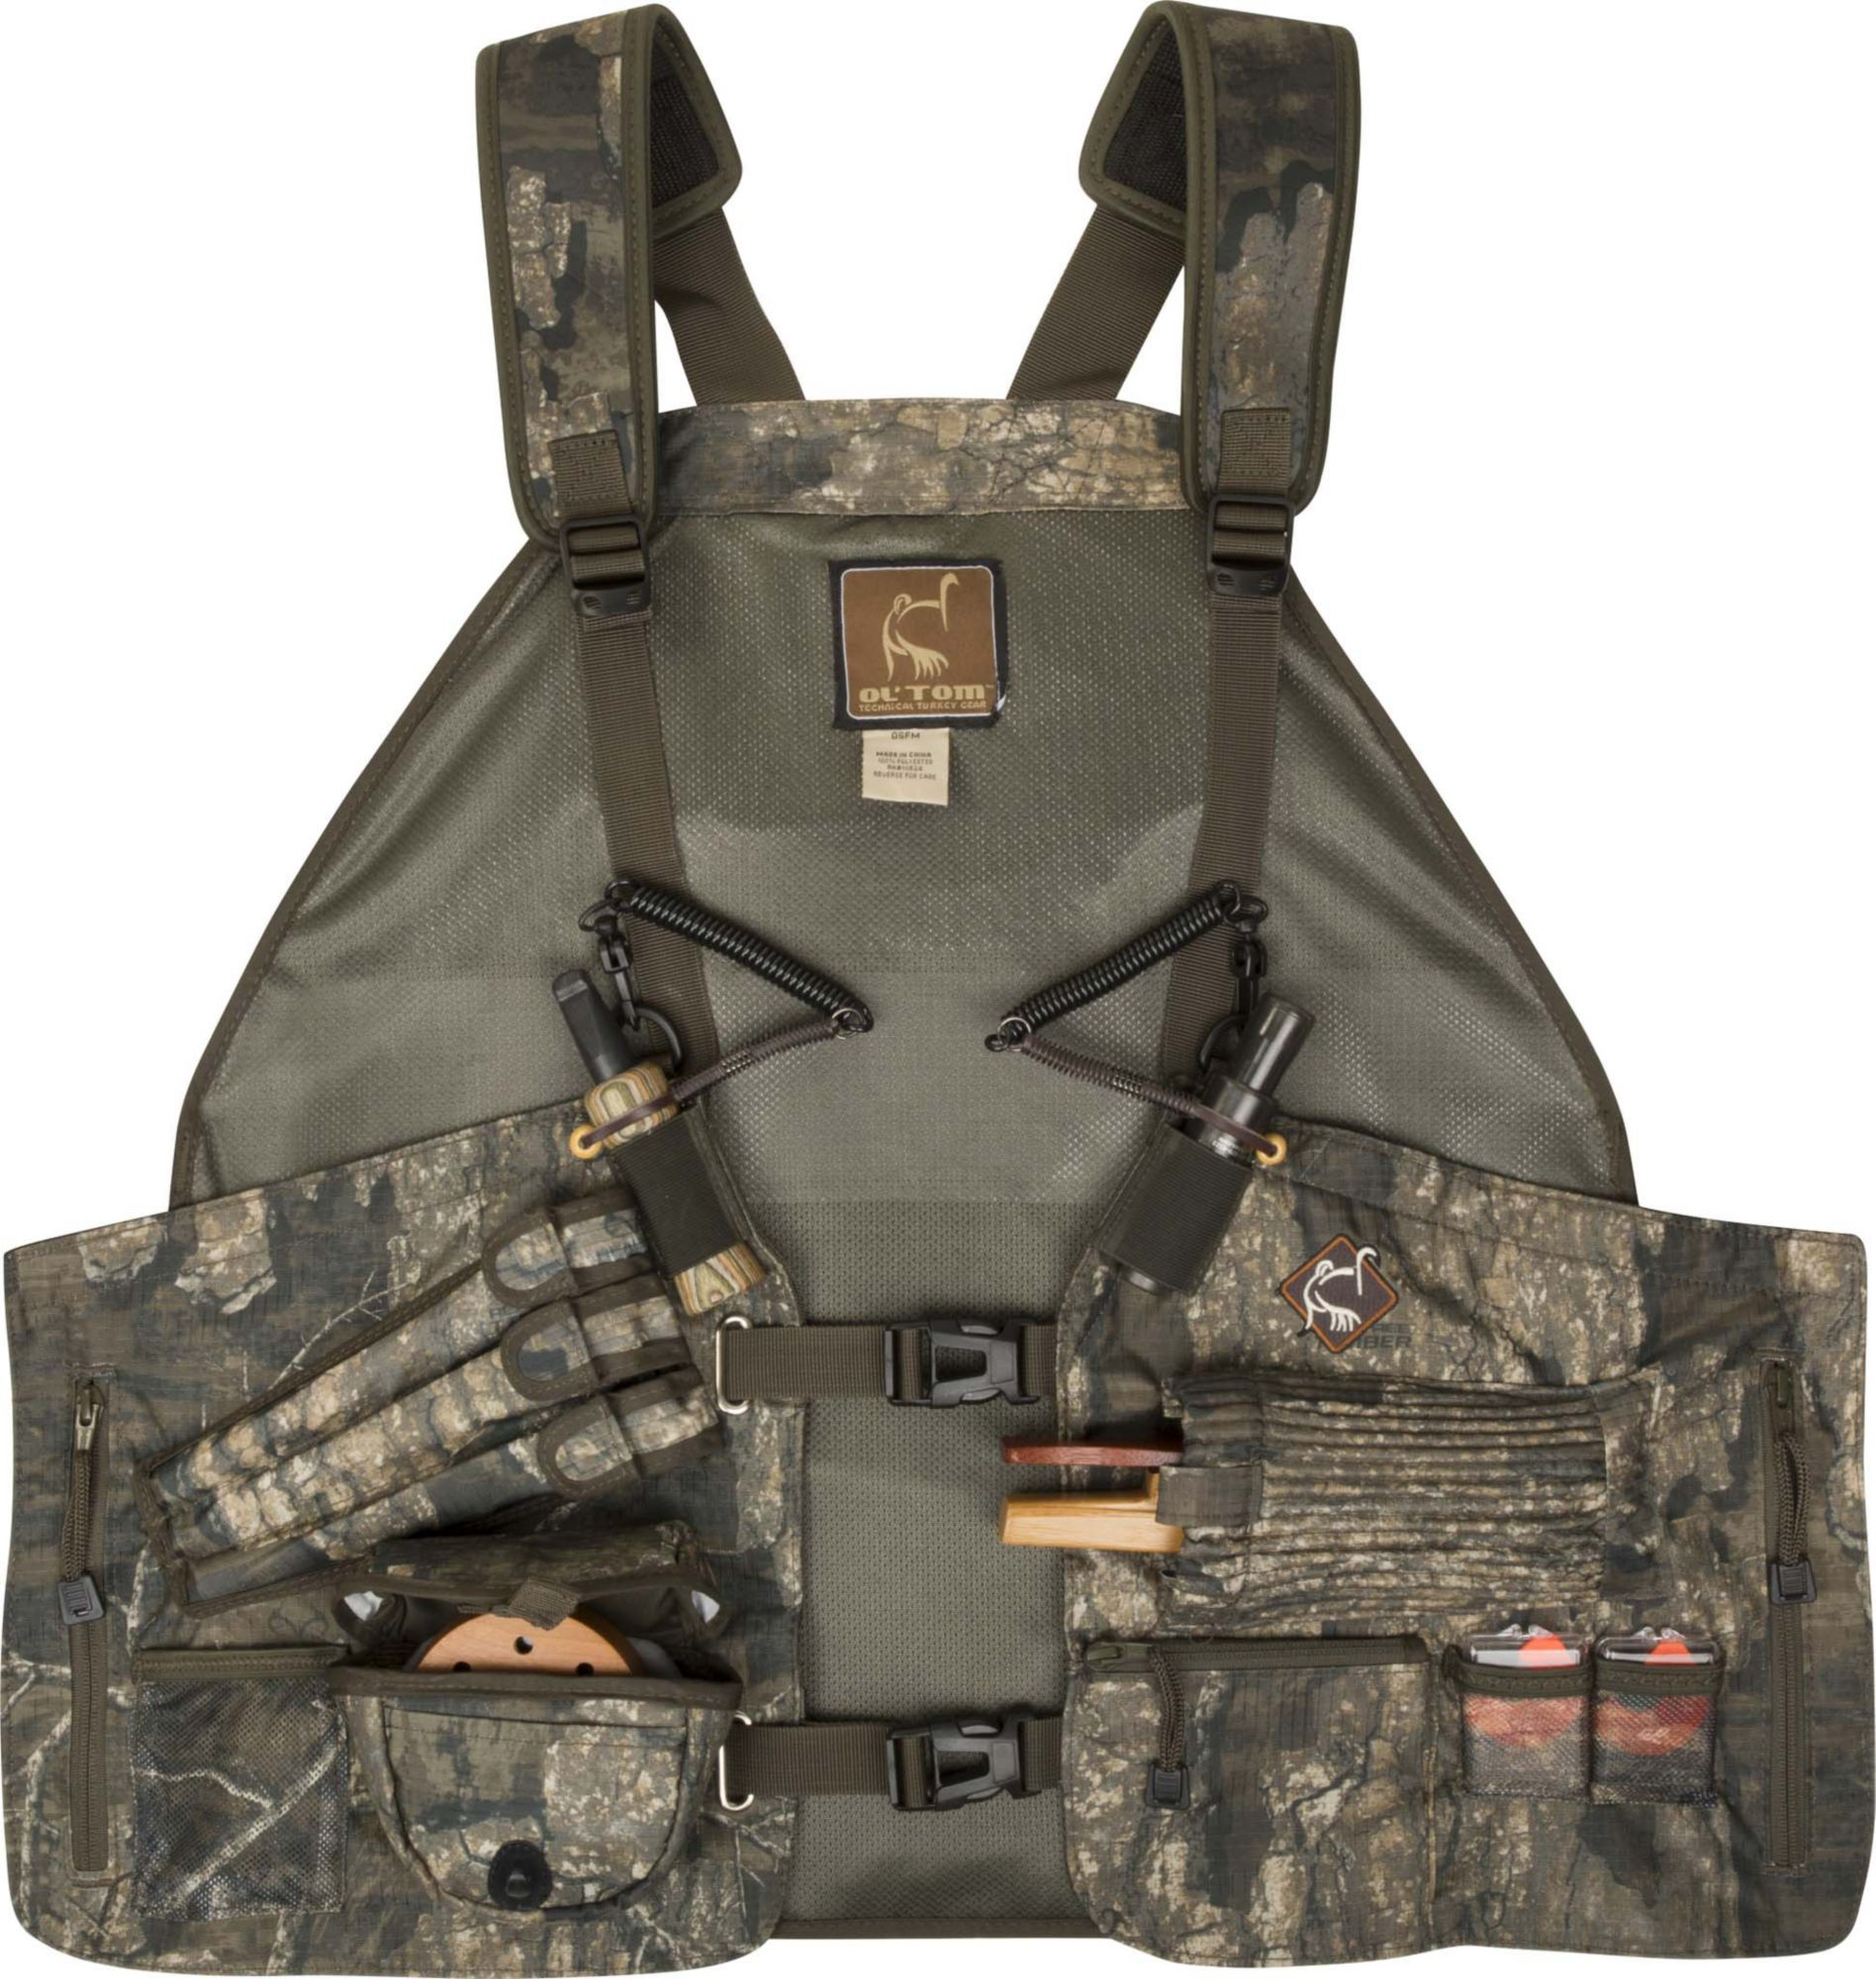 Ol' Tom Time & Motion Easy-Rider Turkey Vest, Men's, Multi